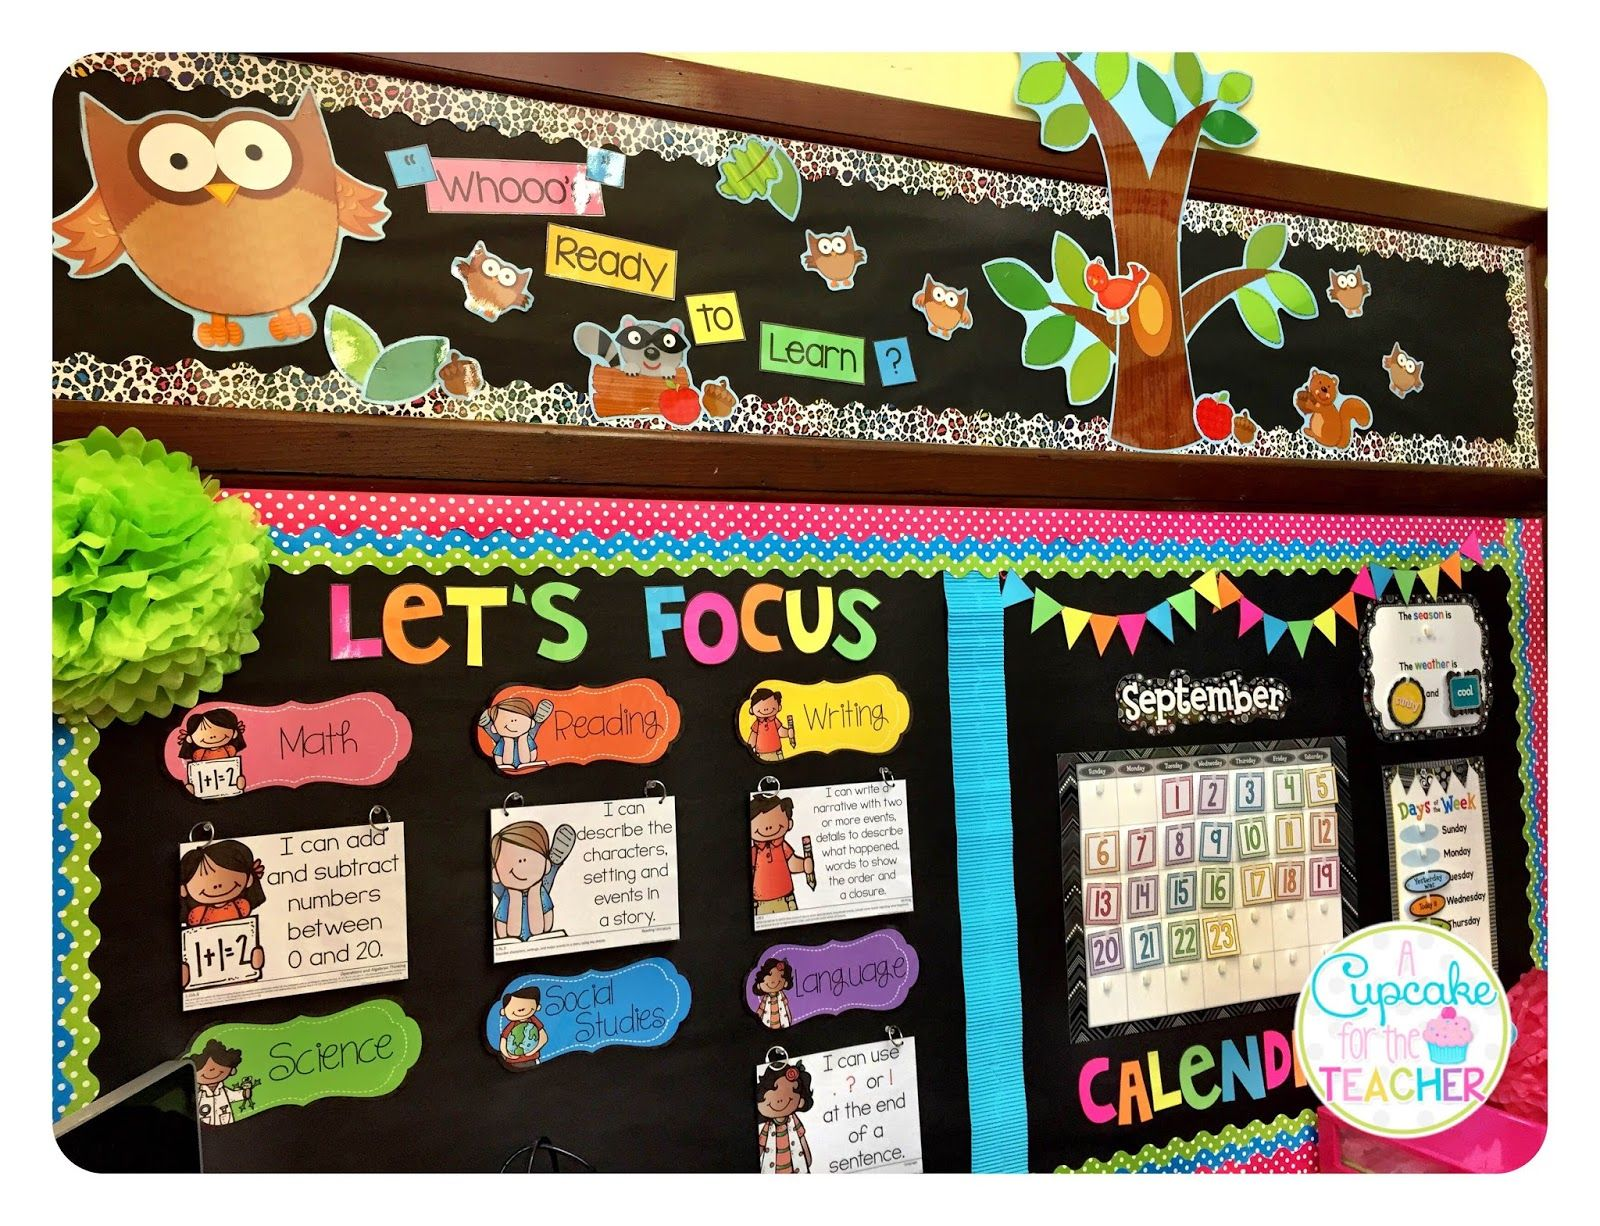 Cork Board Diy Ideas Creative - Click To Find Out